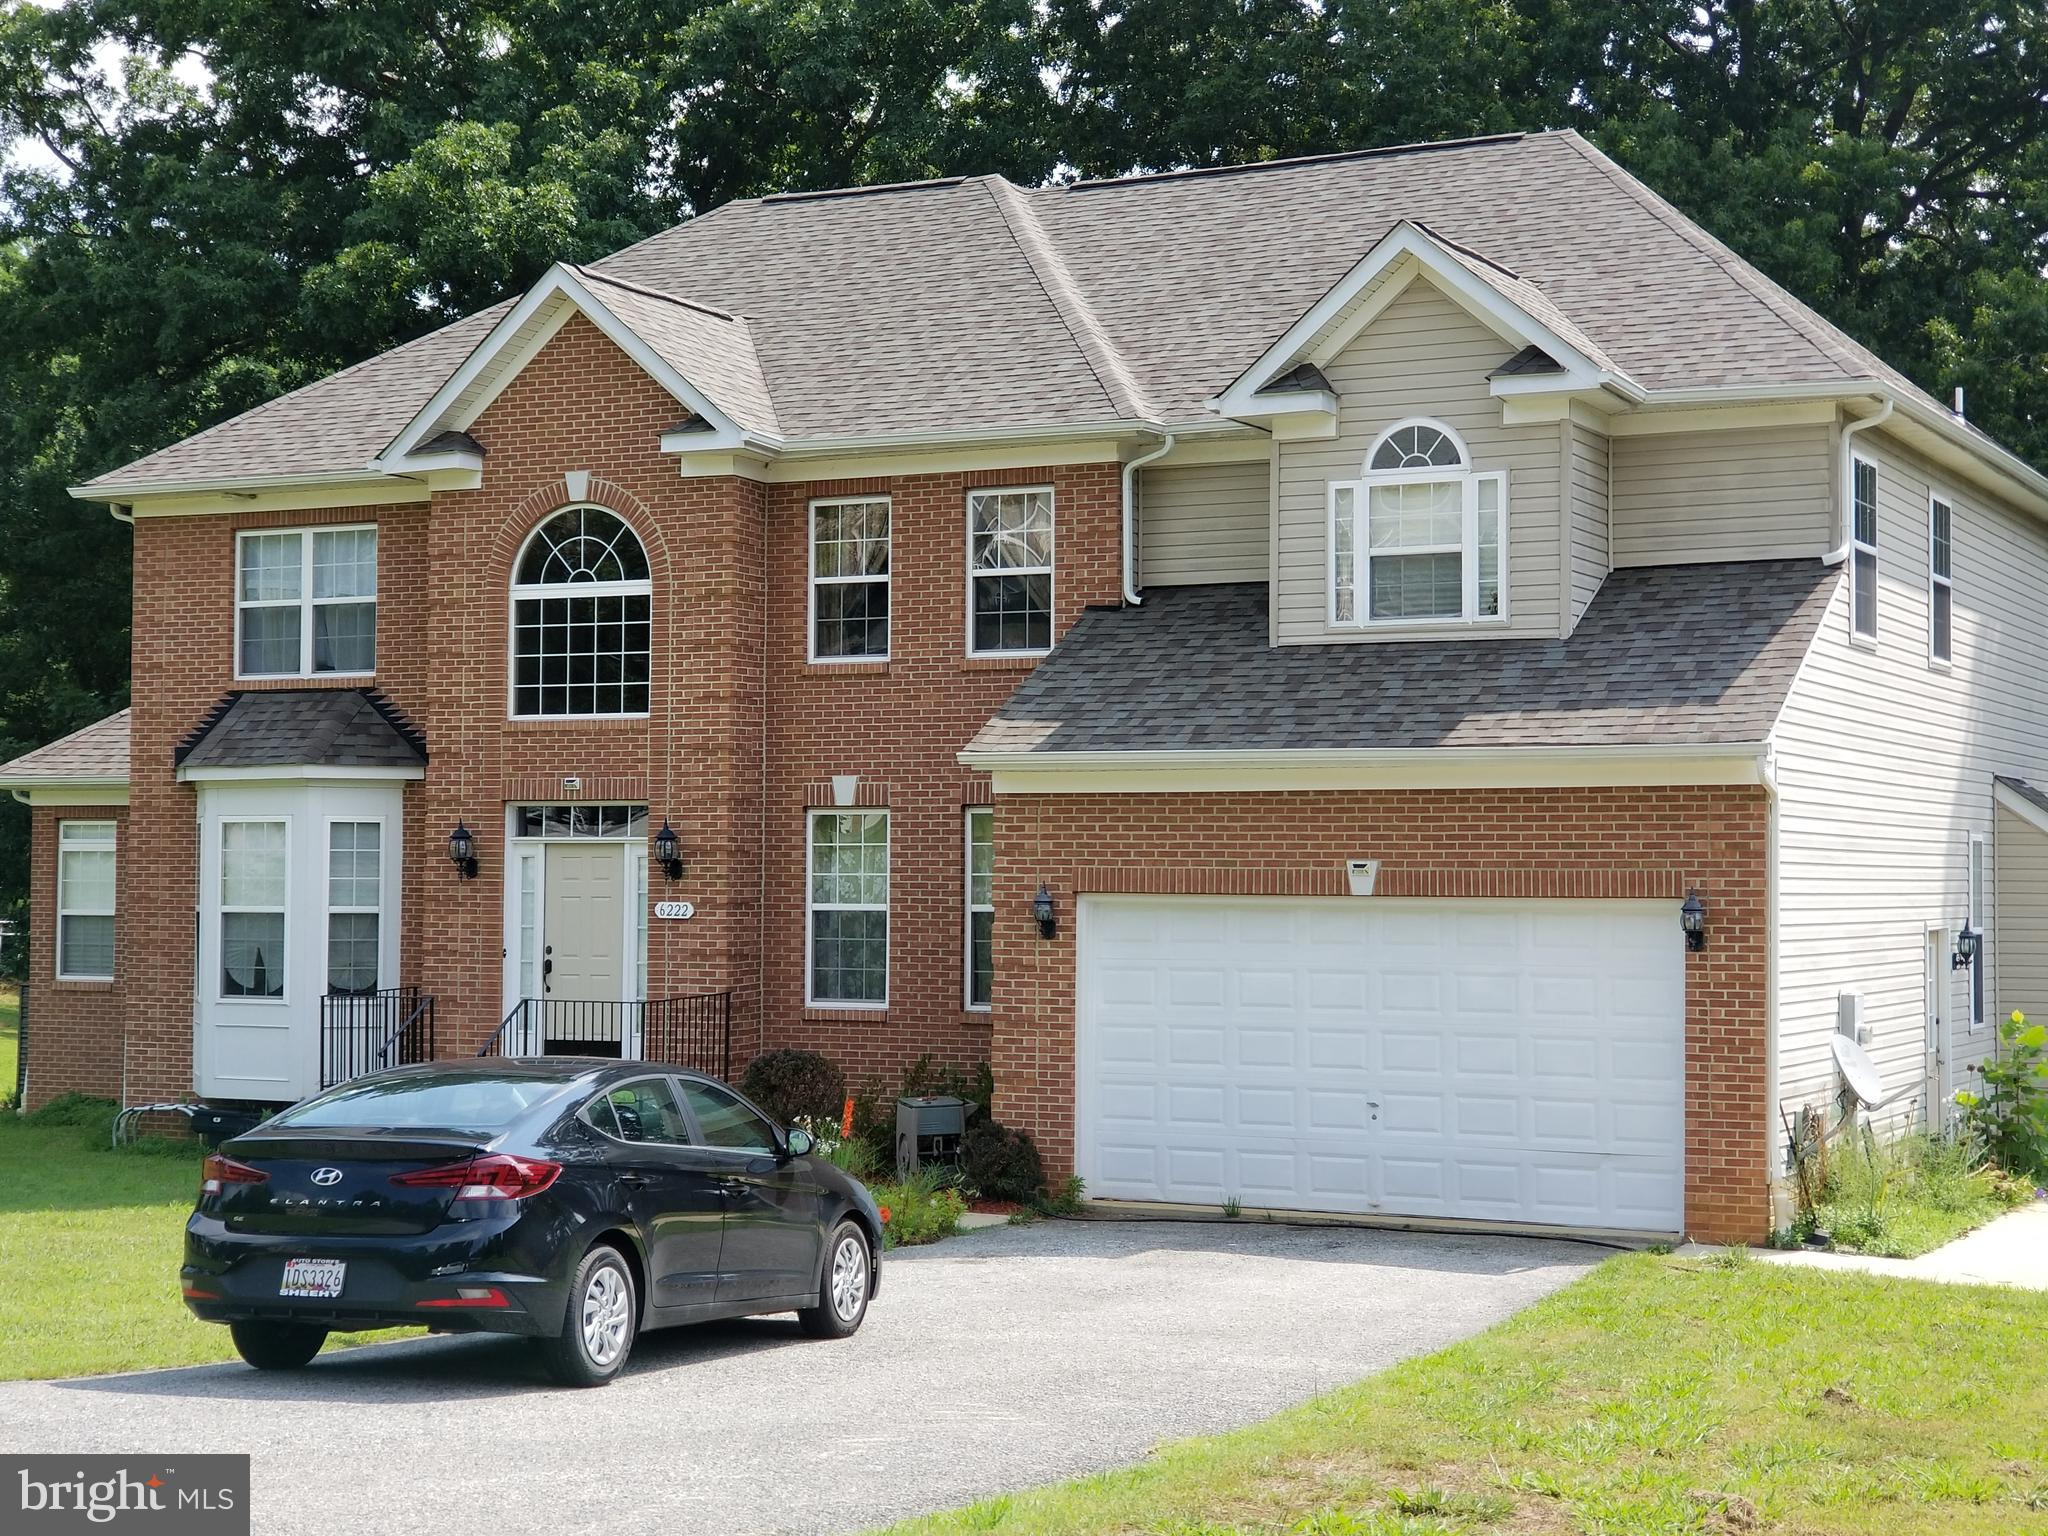 8 bedrooms and 4.5 baths - FULL FINISHED BASEMENT HAS AN APARTMENT WITH SEPARATE ENTRANCE, 4 BEDROOM